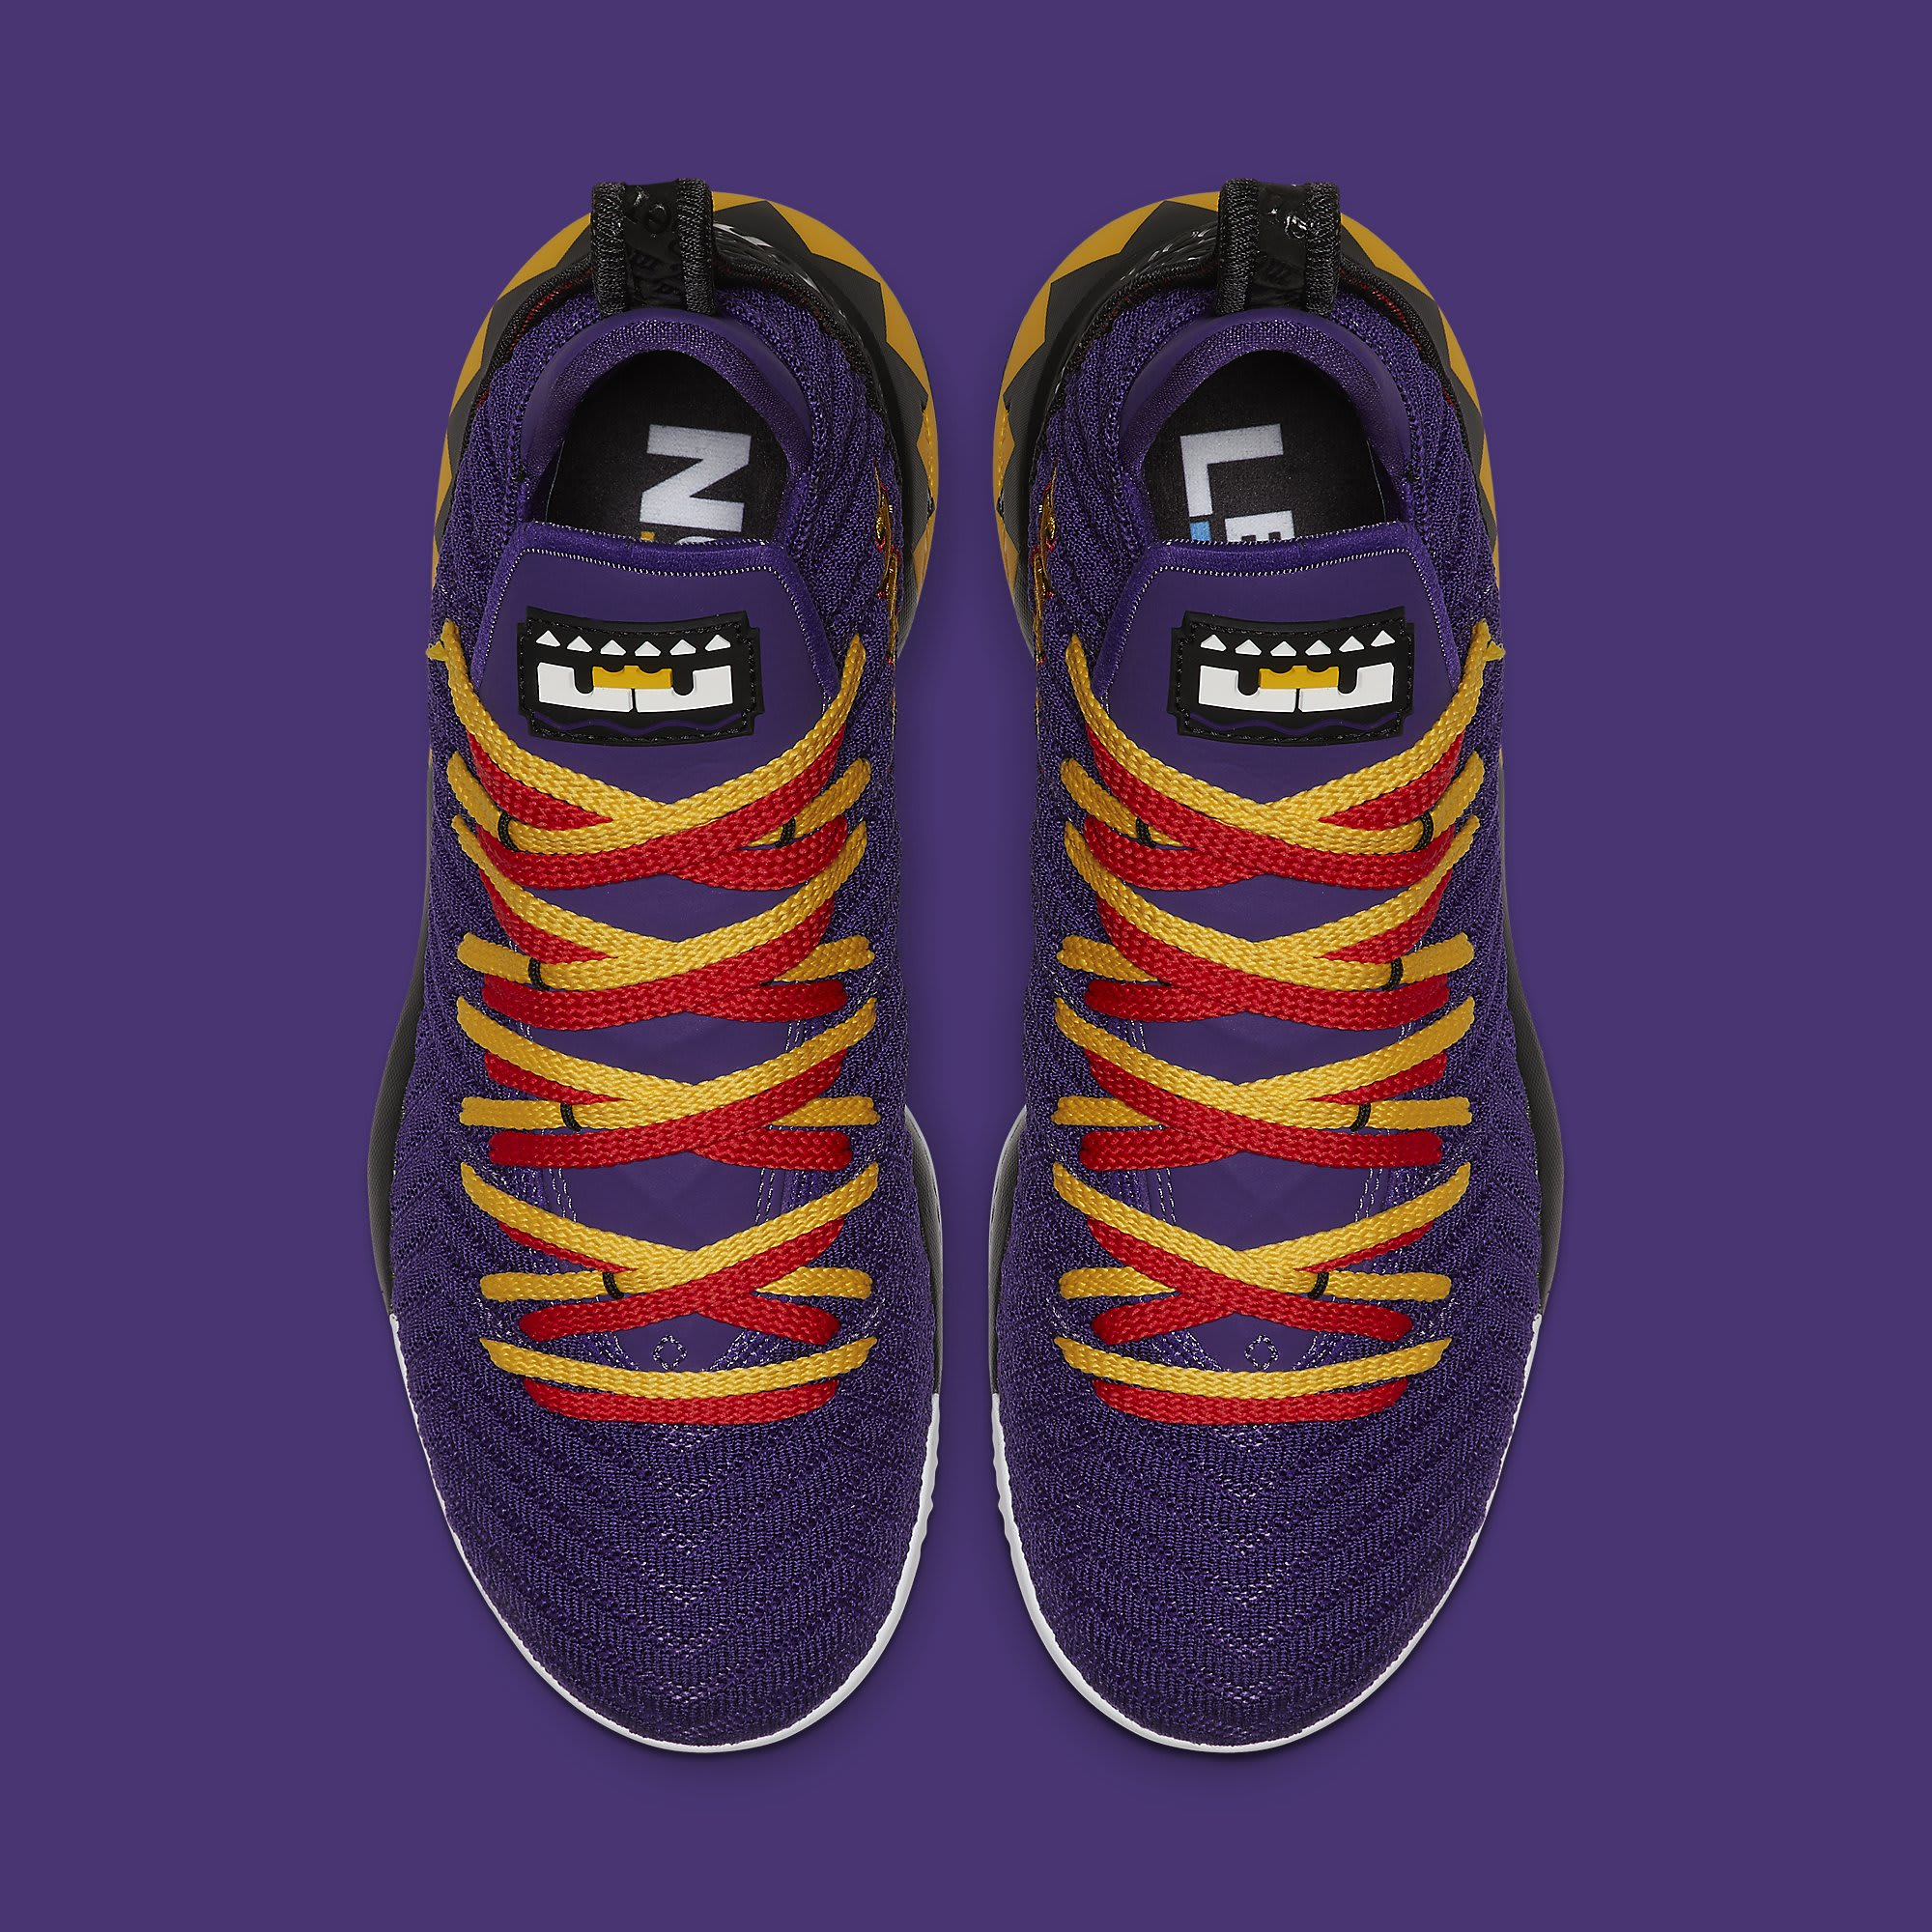 86047055 Nike LeBron 16 Martin Release Date | Sole Collector